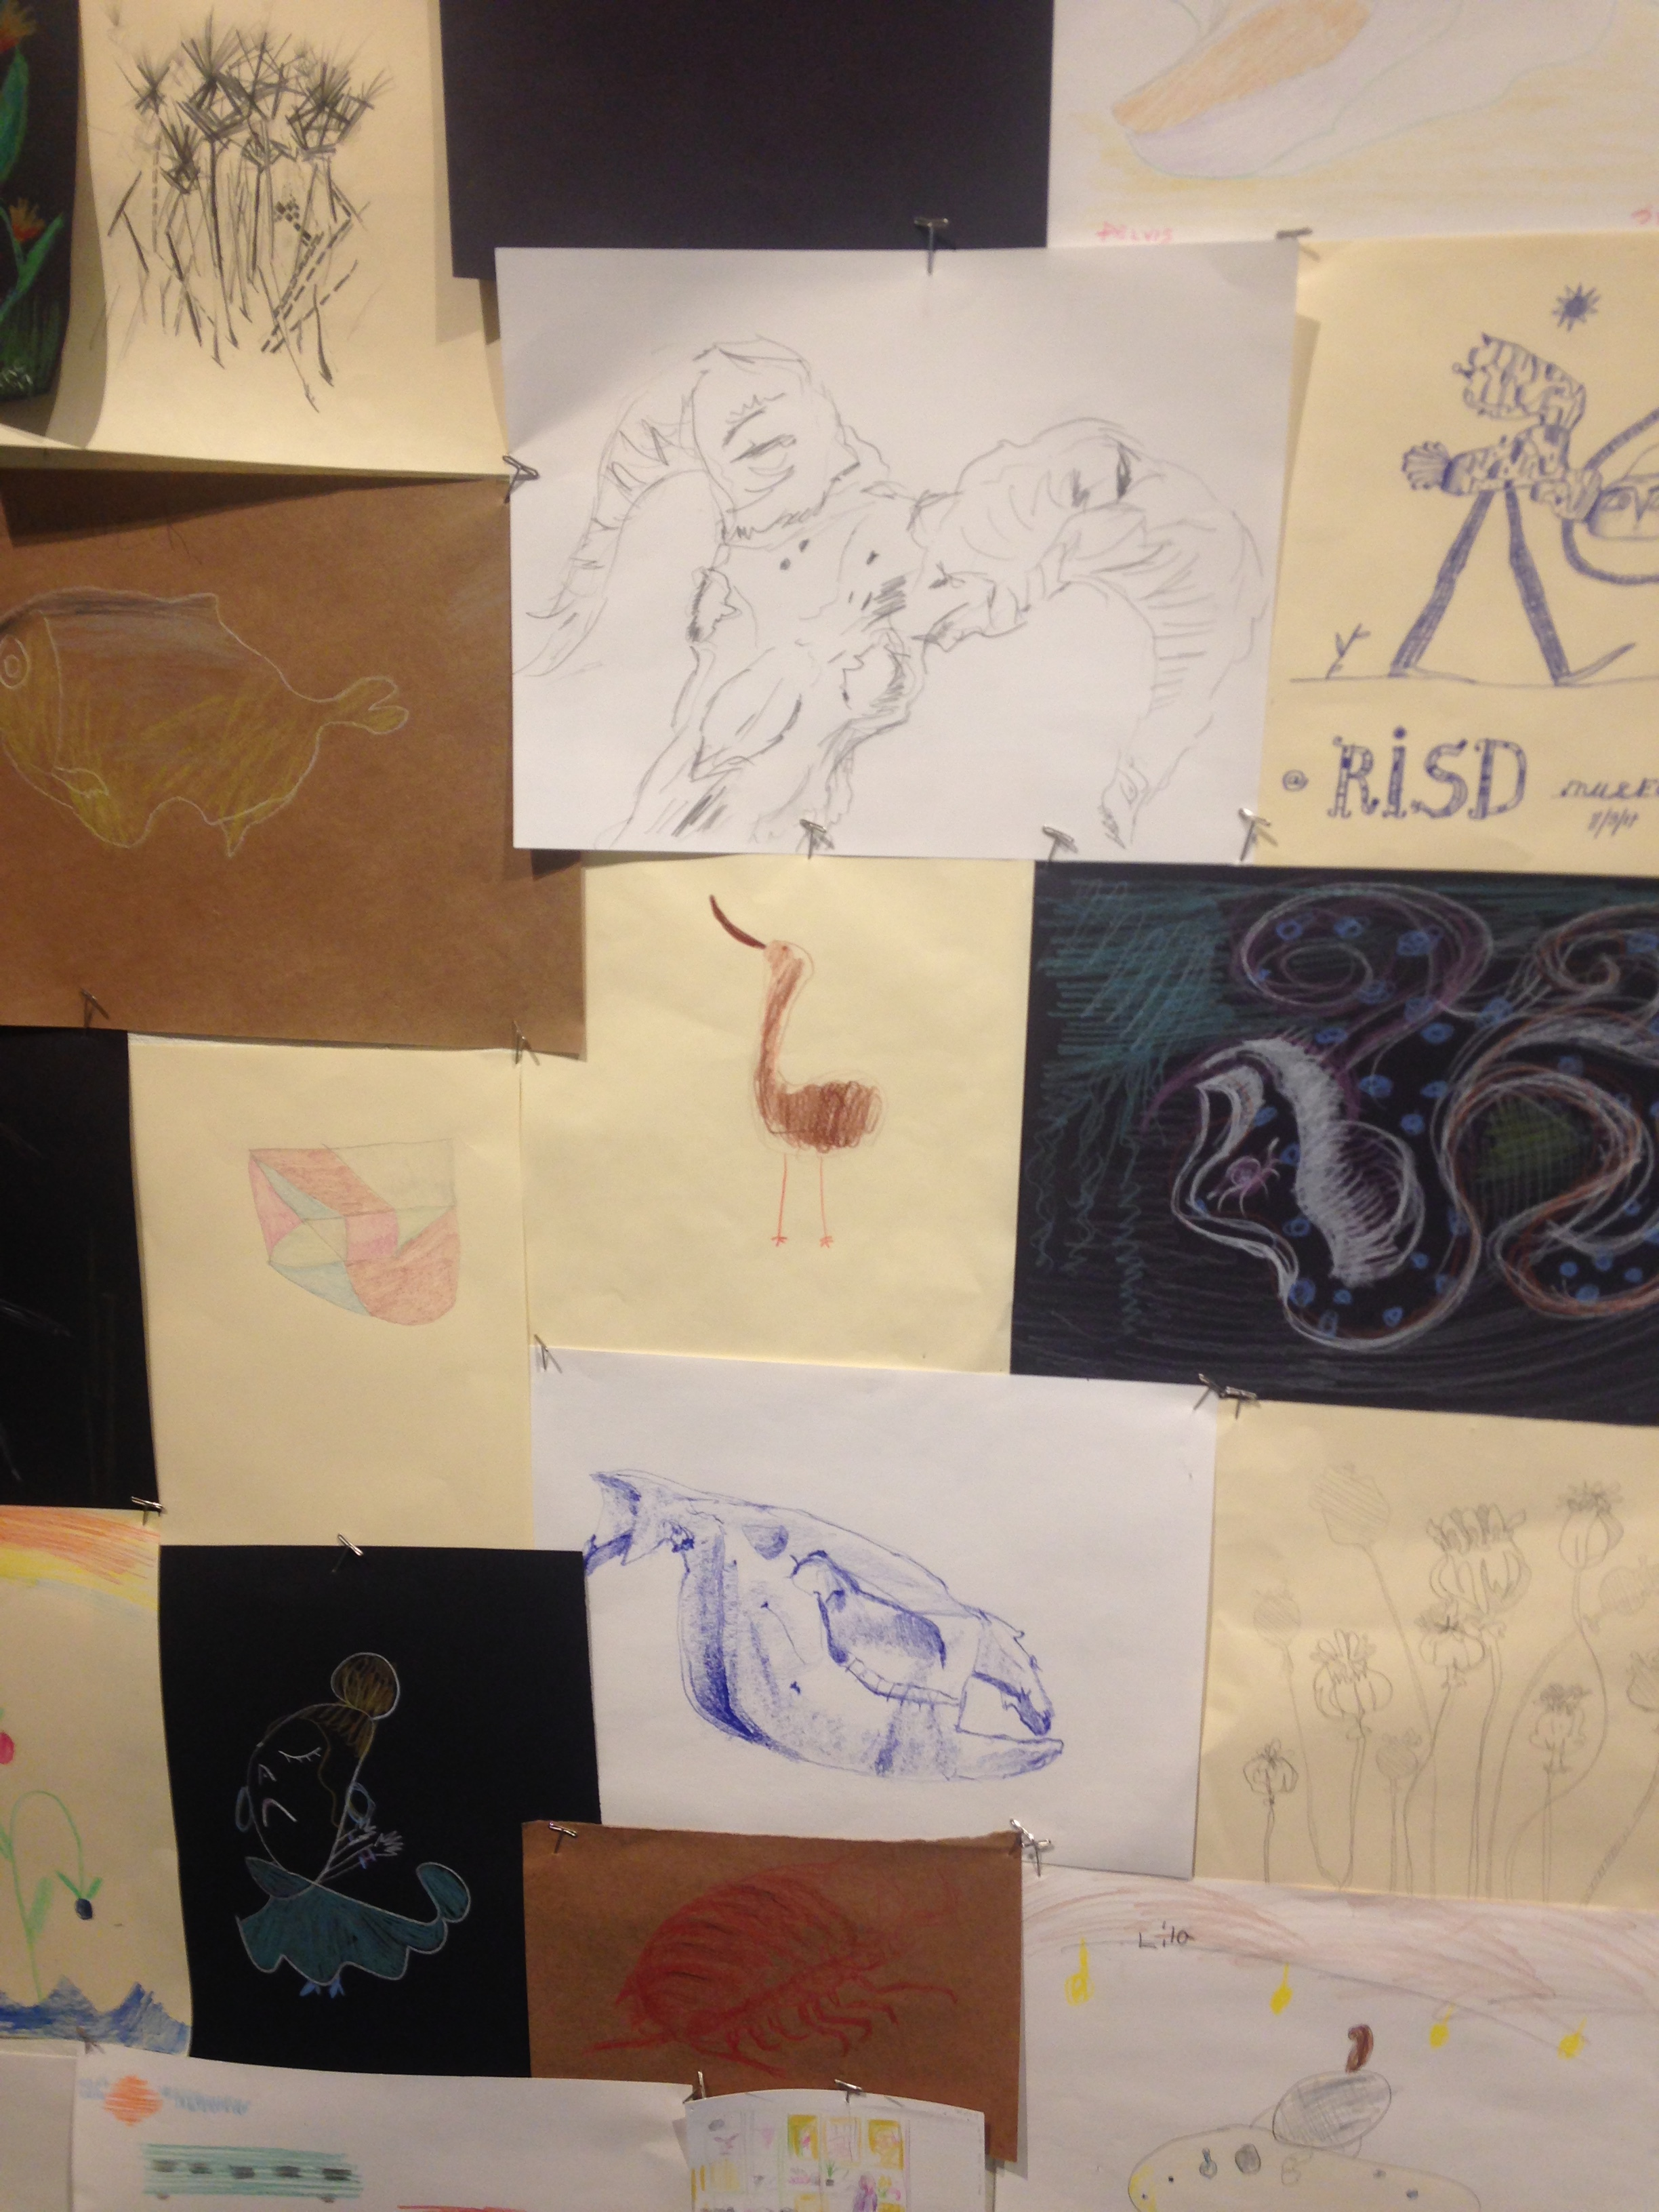 drawings by visitors hung on the gallery walls